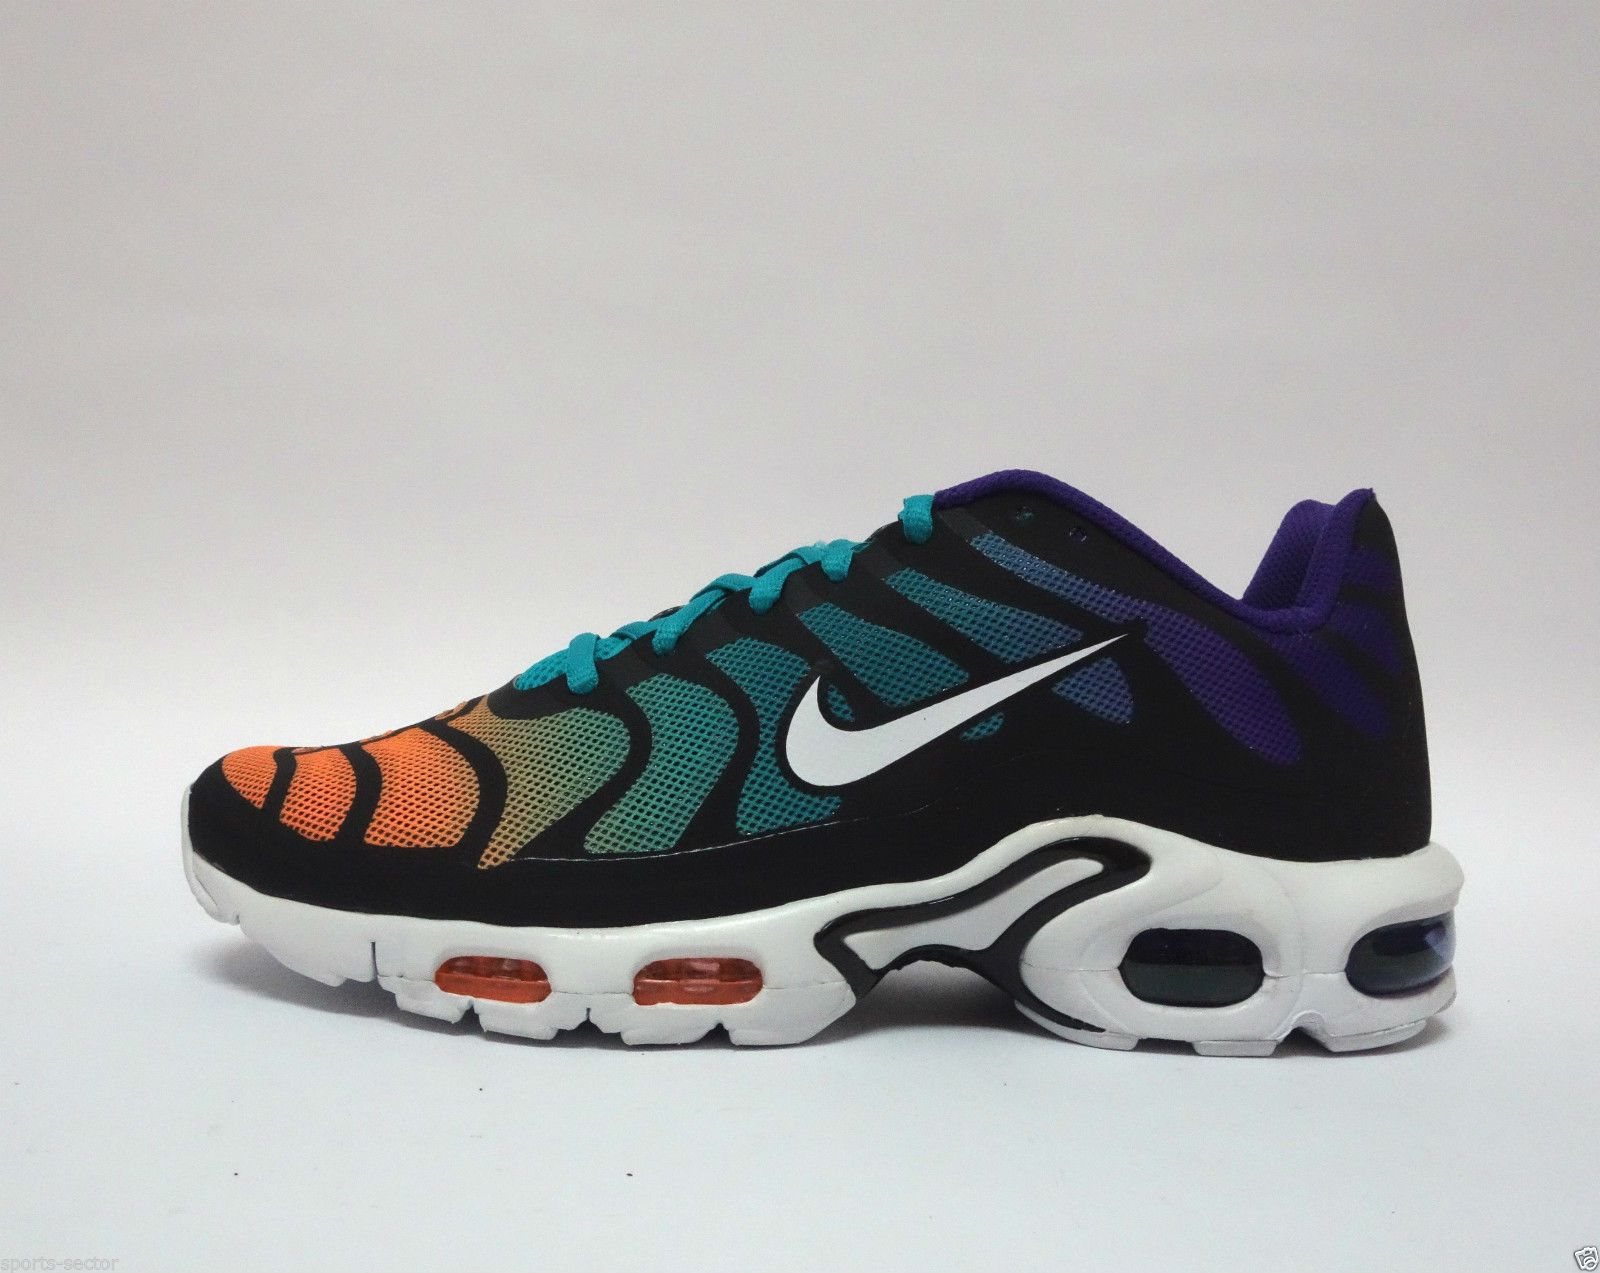 9f58e32541 Nike Air Max Plus Hyperfuse TN1 Tuned Mens Trainers Shoes Turbo Green/White  | eBay